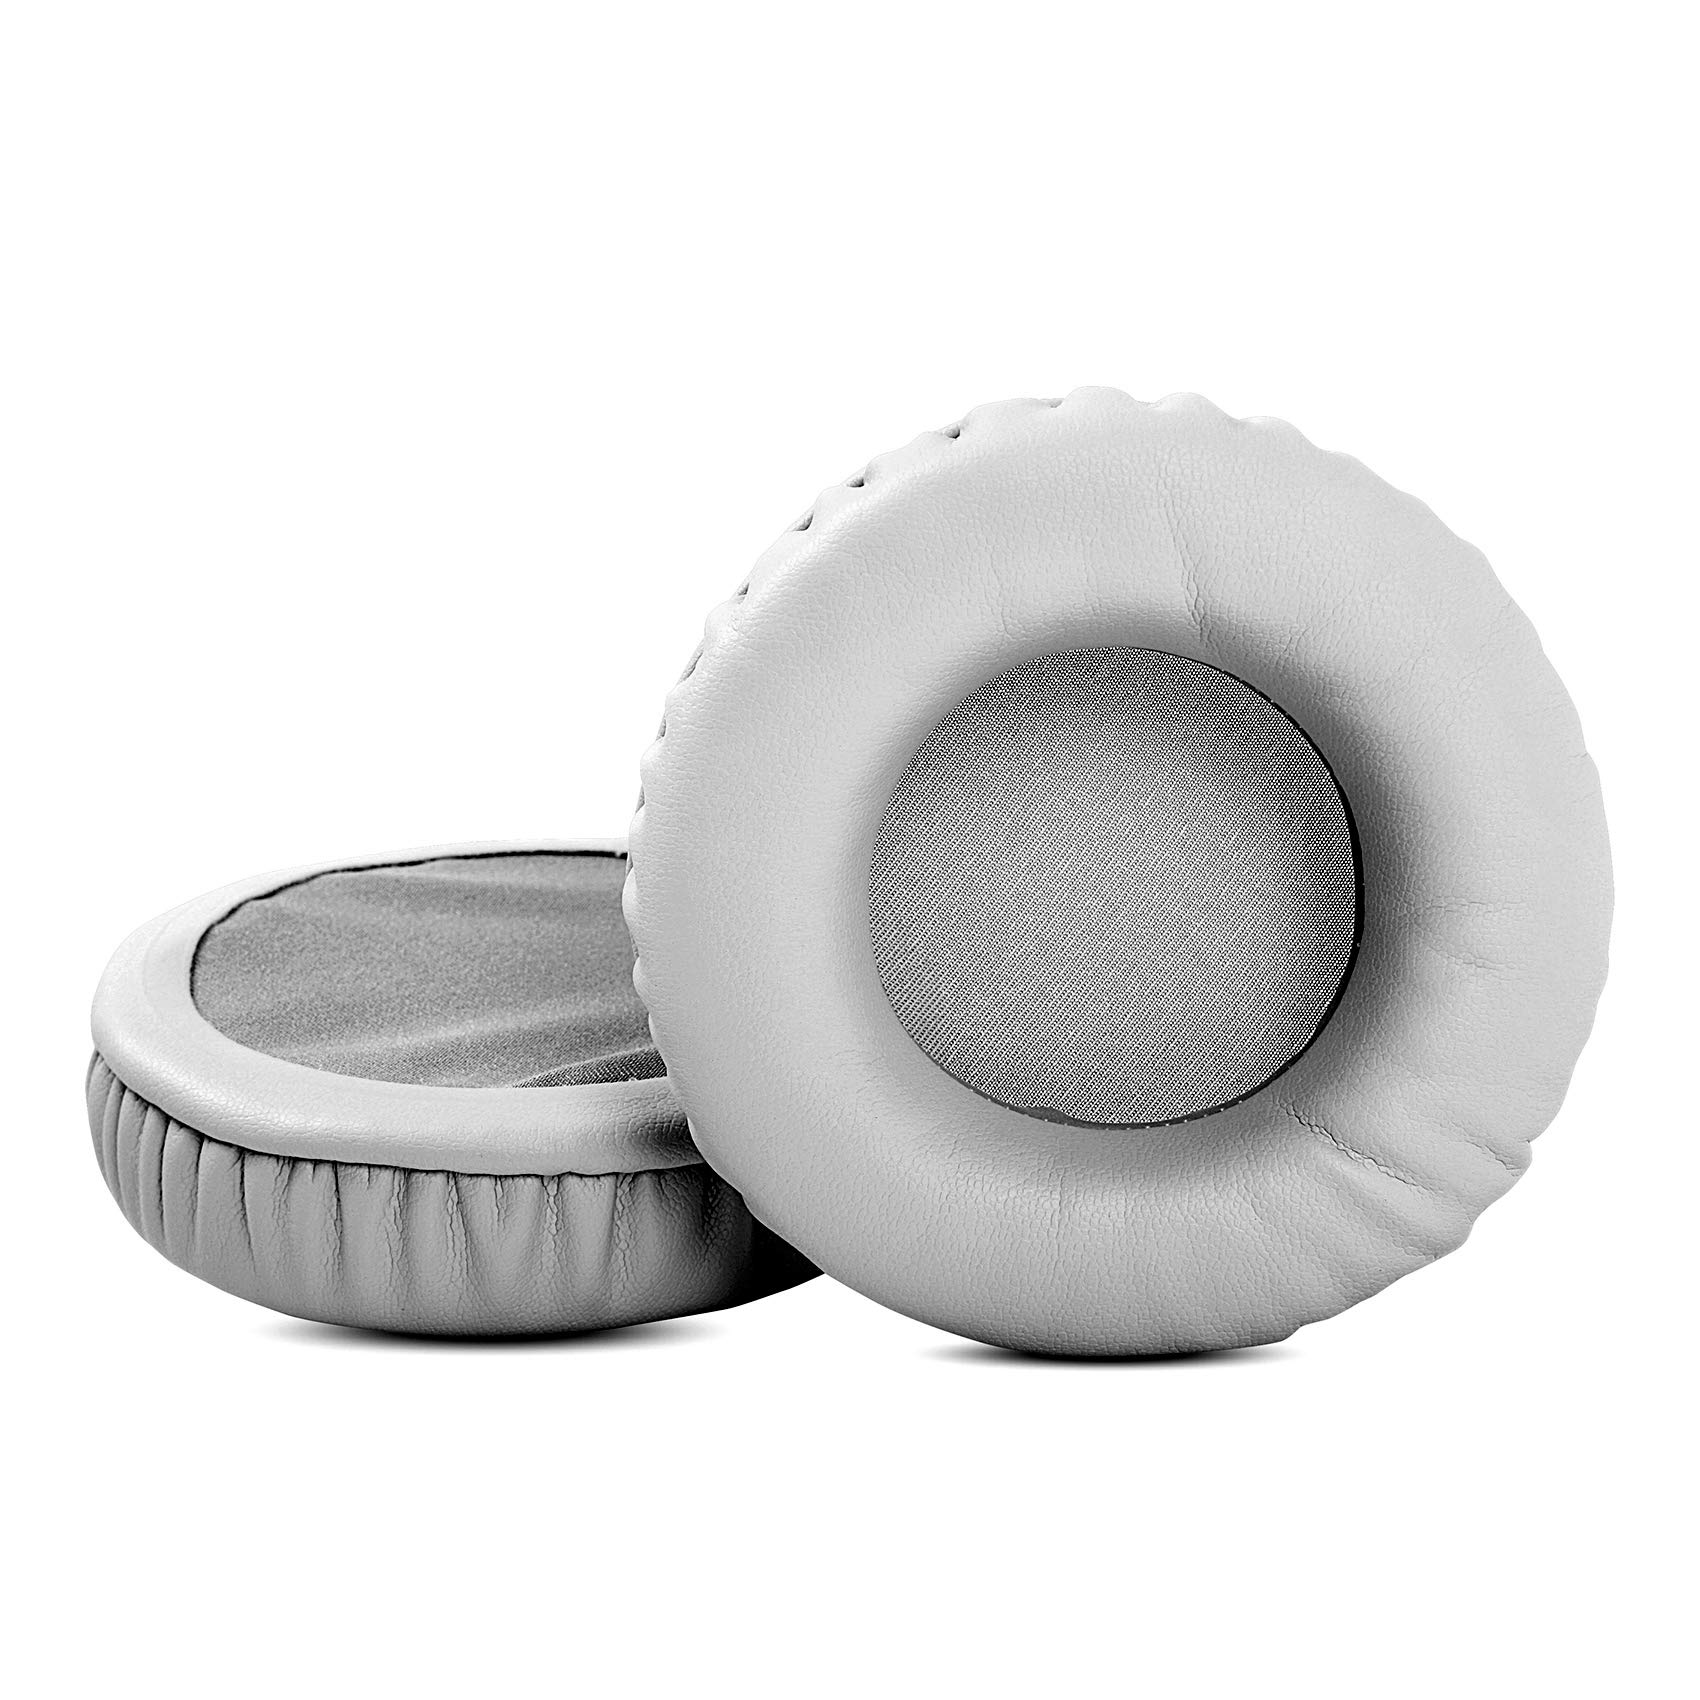 YunYiYi Gray Earpads Replacement Ear Pads Pillow Foam Ear Cushion Ear Cups Ear Cover Compatible with SONY DR-BTN200 BTN200 BTN 200 Headphones